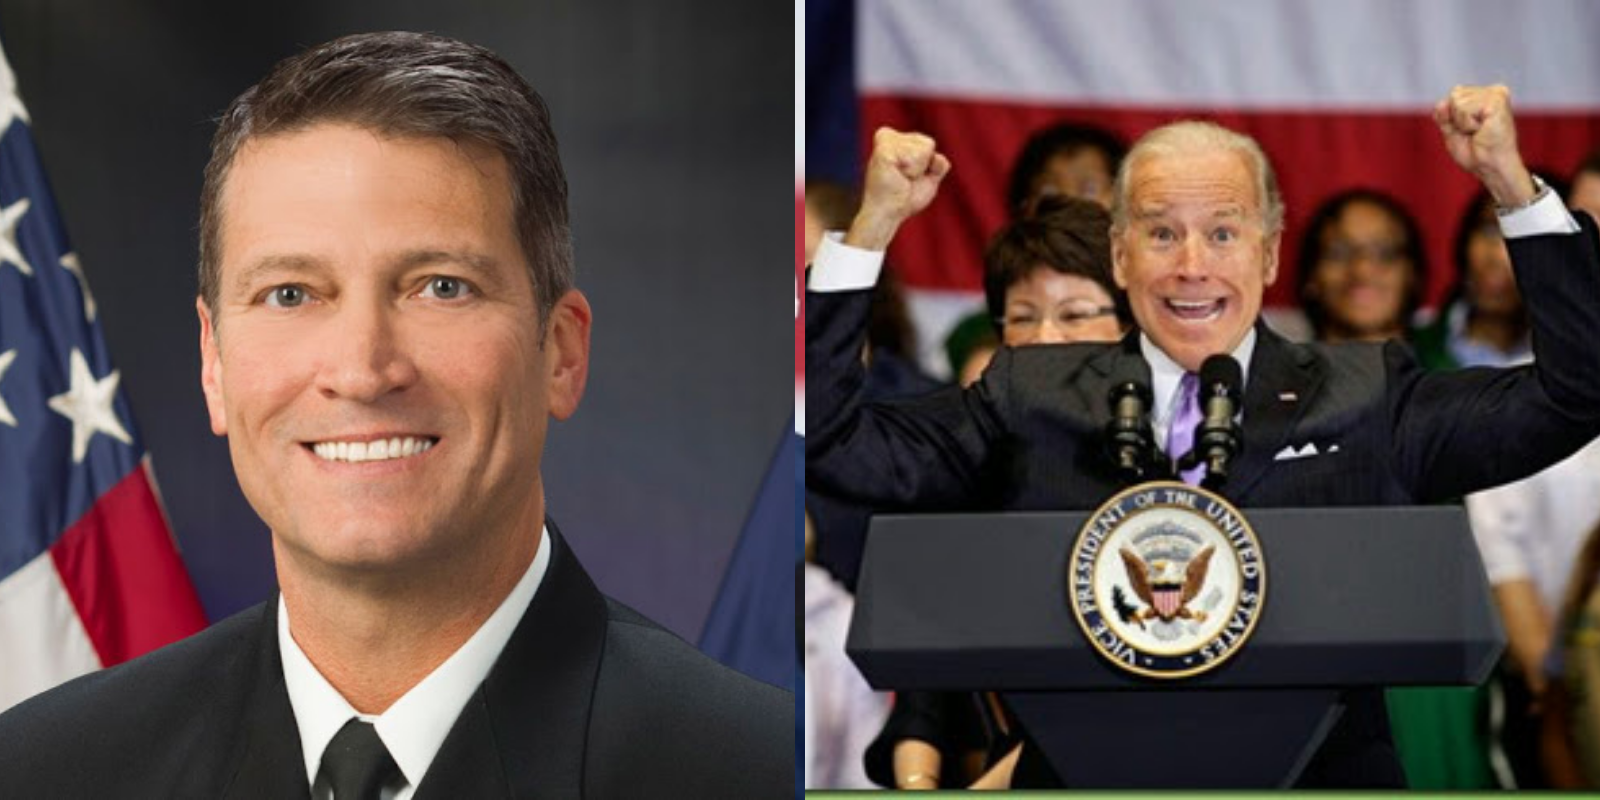 Former White House doctor says Biden does not have 'mental capacity' to be president